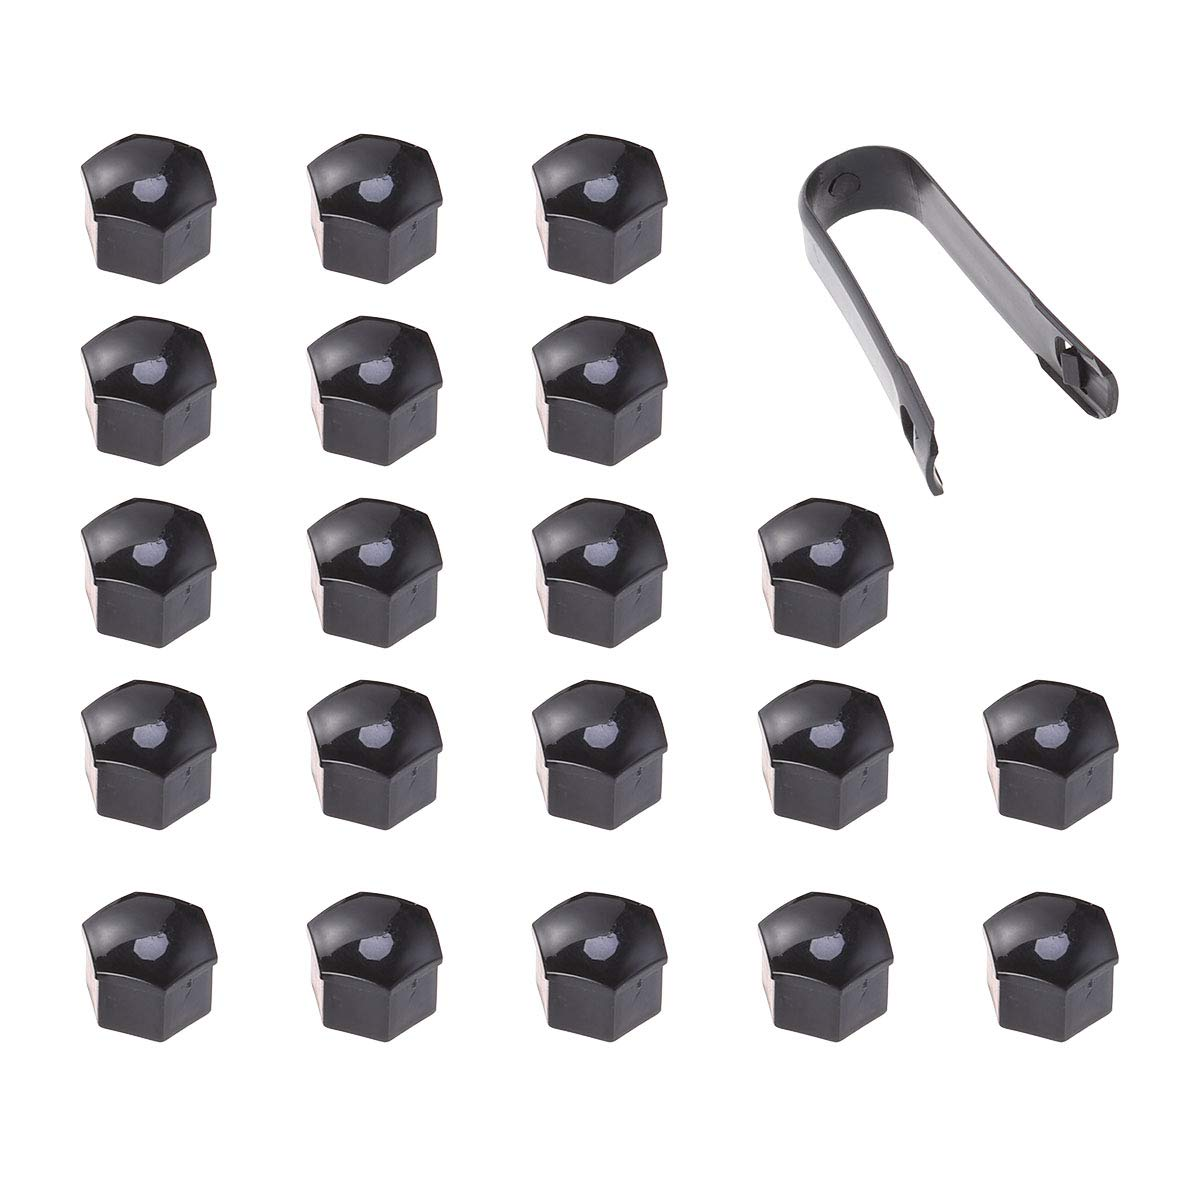 VORCOOL 21 in 1 Hexagonal Wheel Lug Nut Covers Bolts Covers Screw Protect Caps 21mm with Clips Black